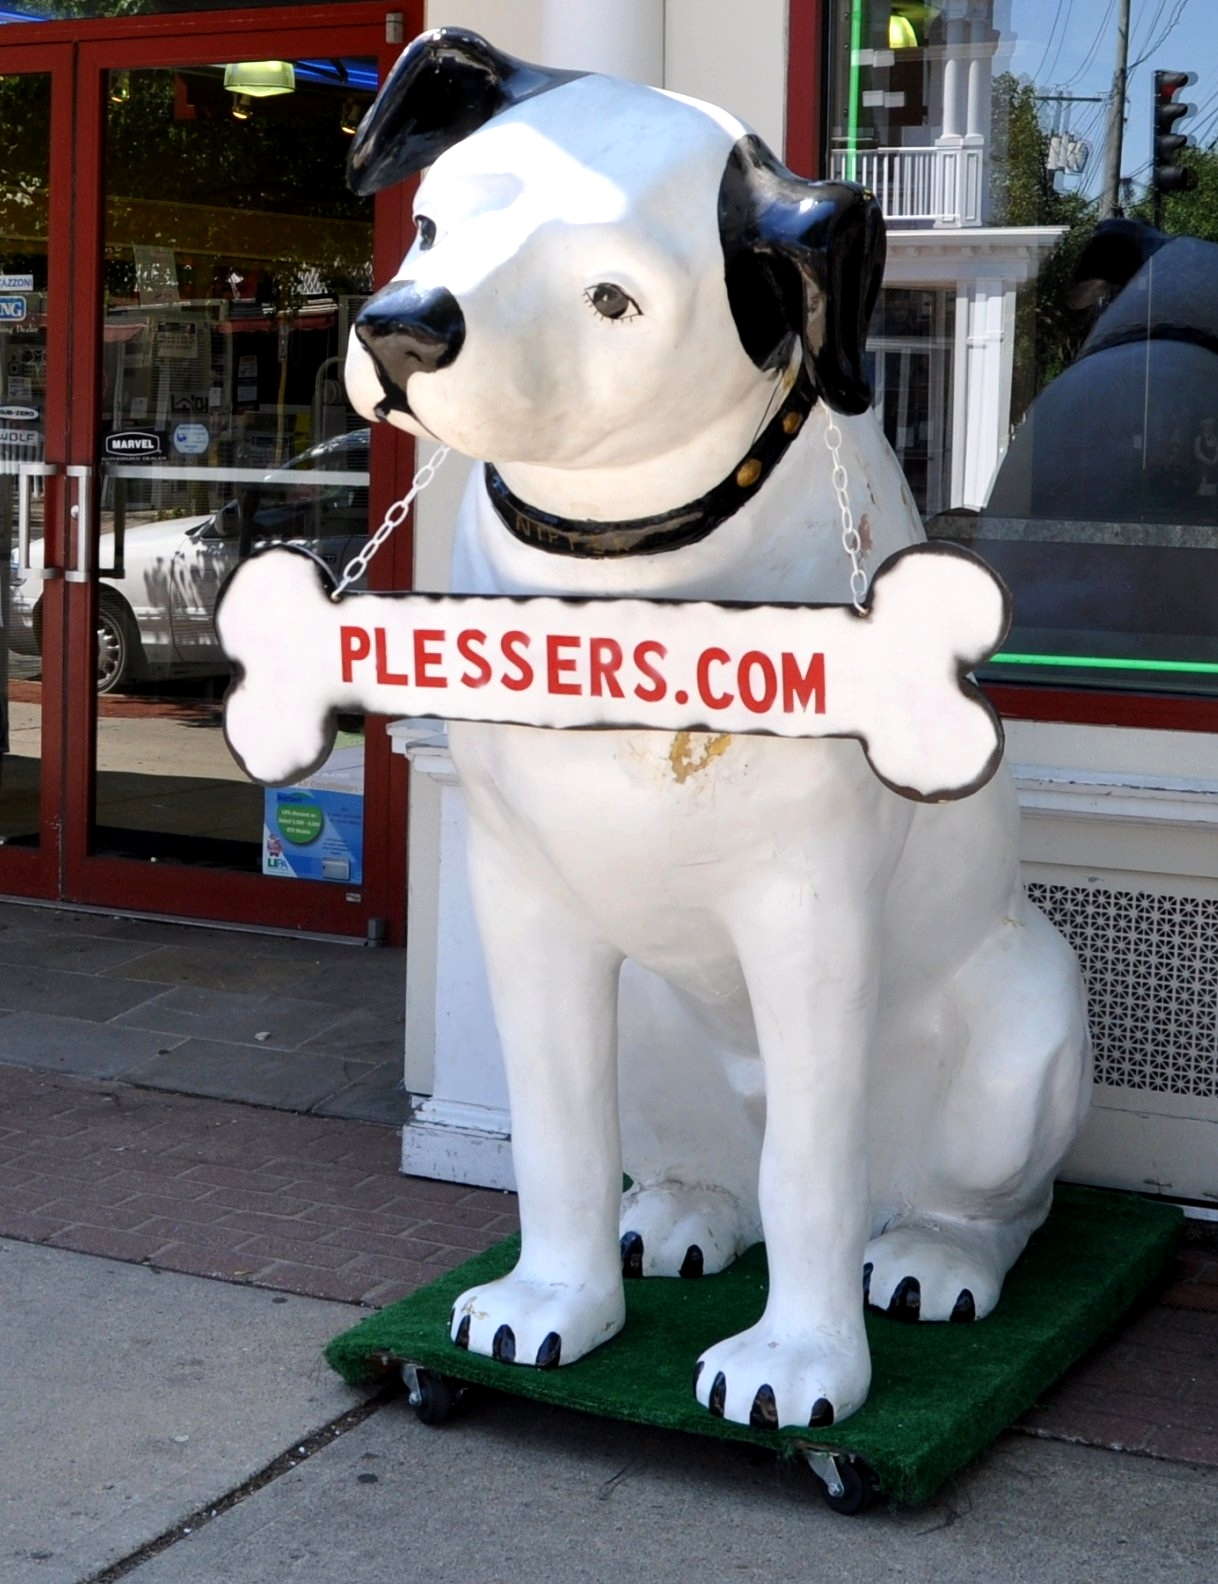 Nipper Plessers Appliances Babylon - a long island roadside attraction